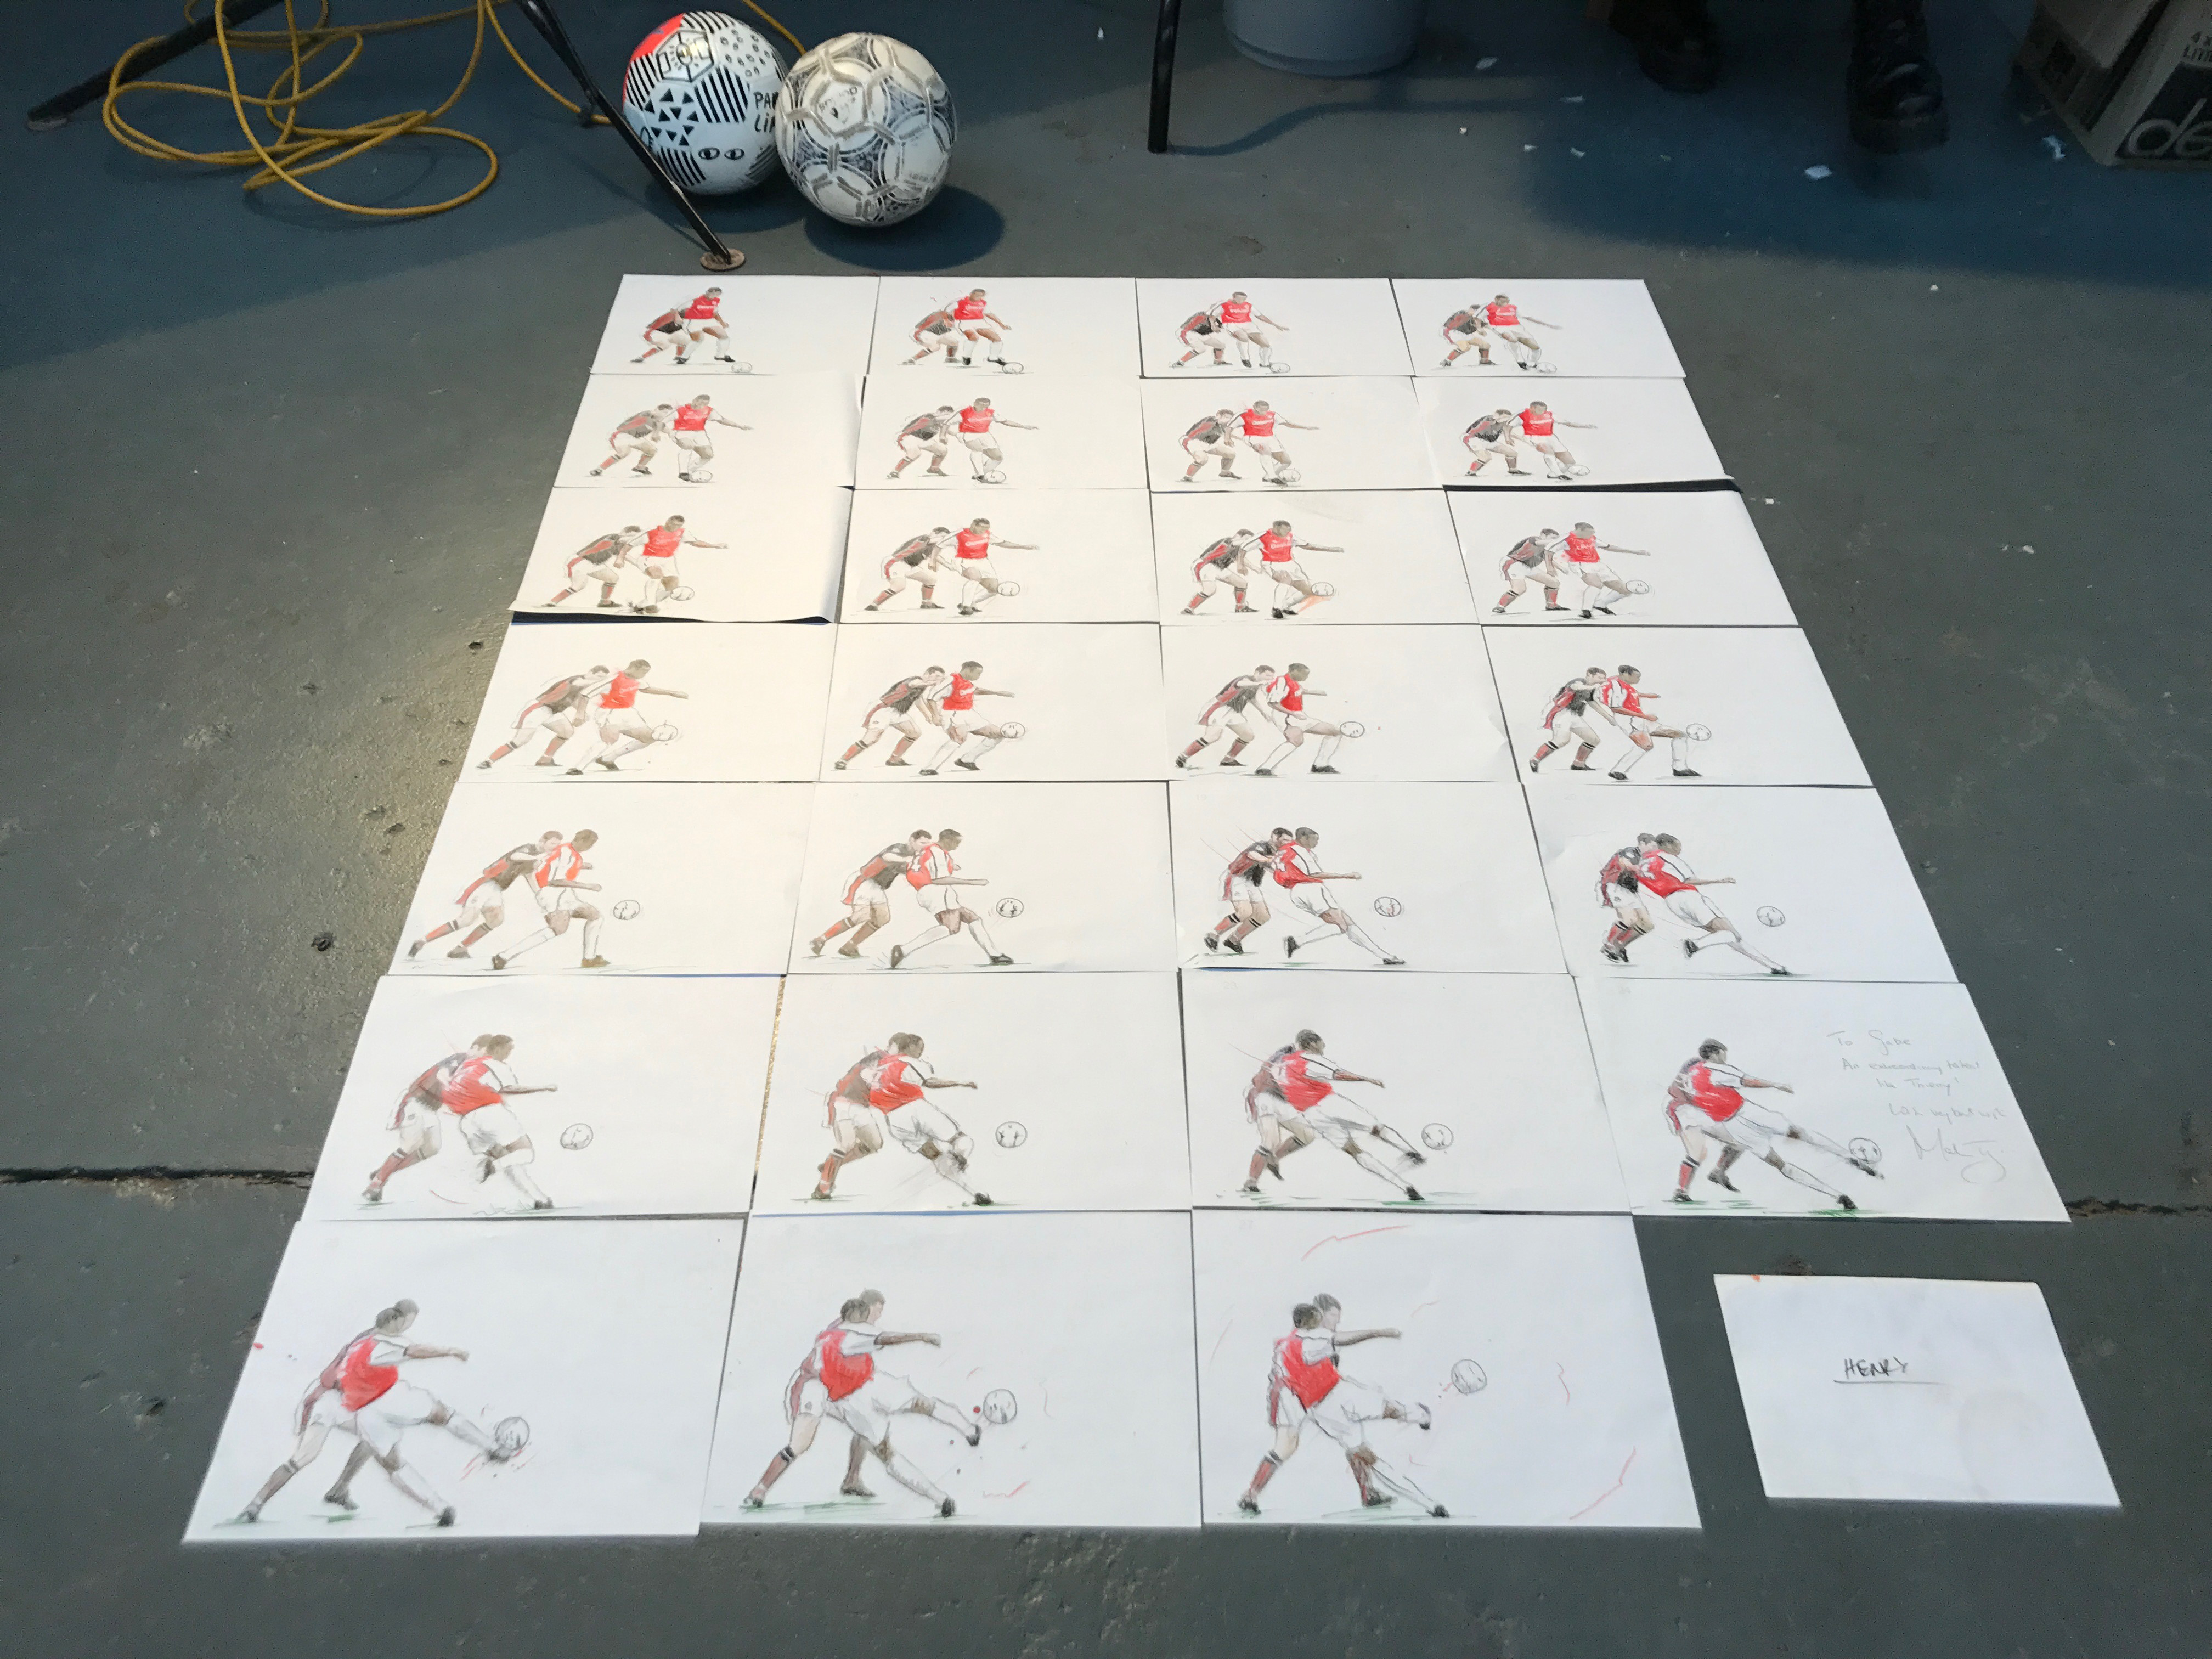 Multiple images showing Thierry Henry's famous volley against Manchester United